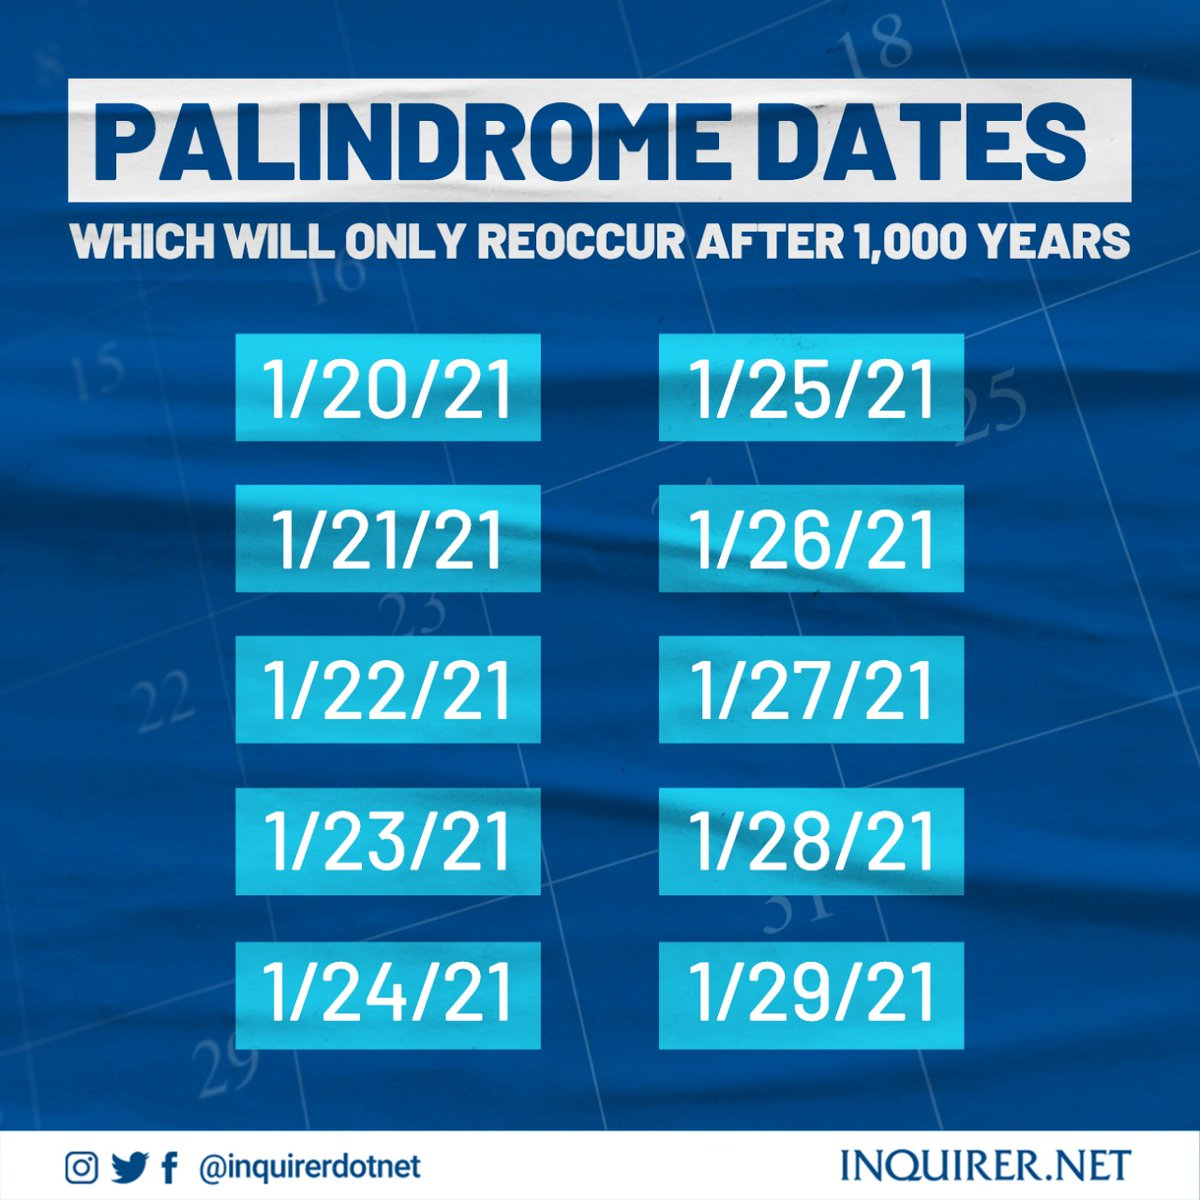 Today is a Palindrome date! Palindrome days are those that when written in a certain format, read the same way forward and backward.  Be sure to spend them in a memorable fashion, this specific set comes only once every thousand years! #PalindromeDate